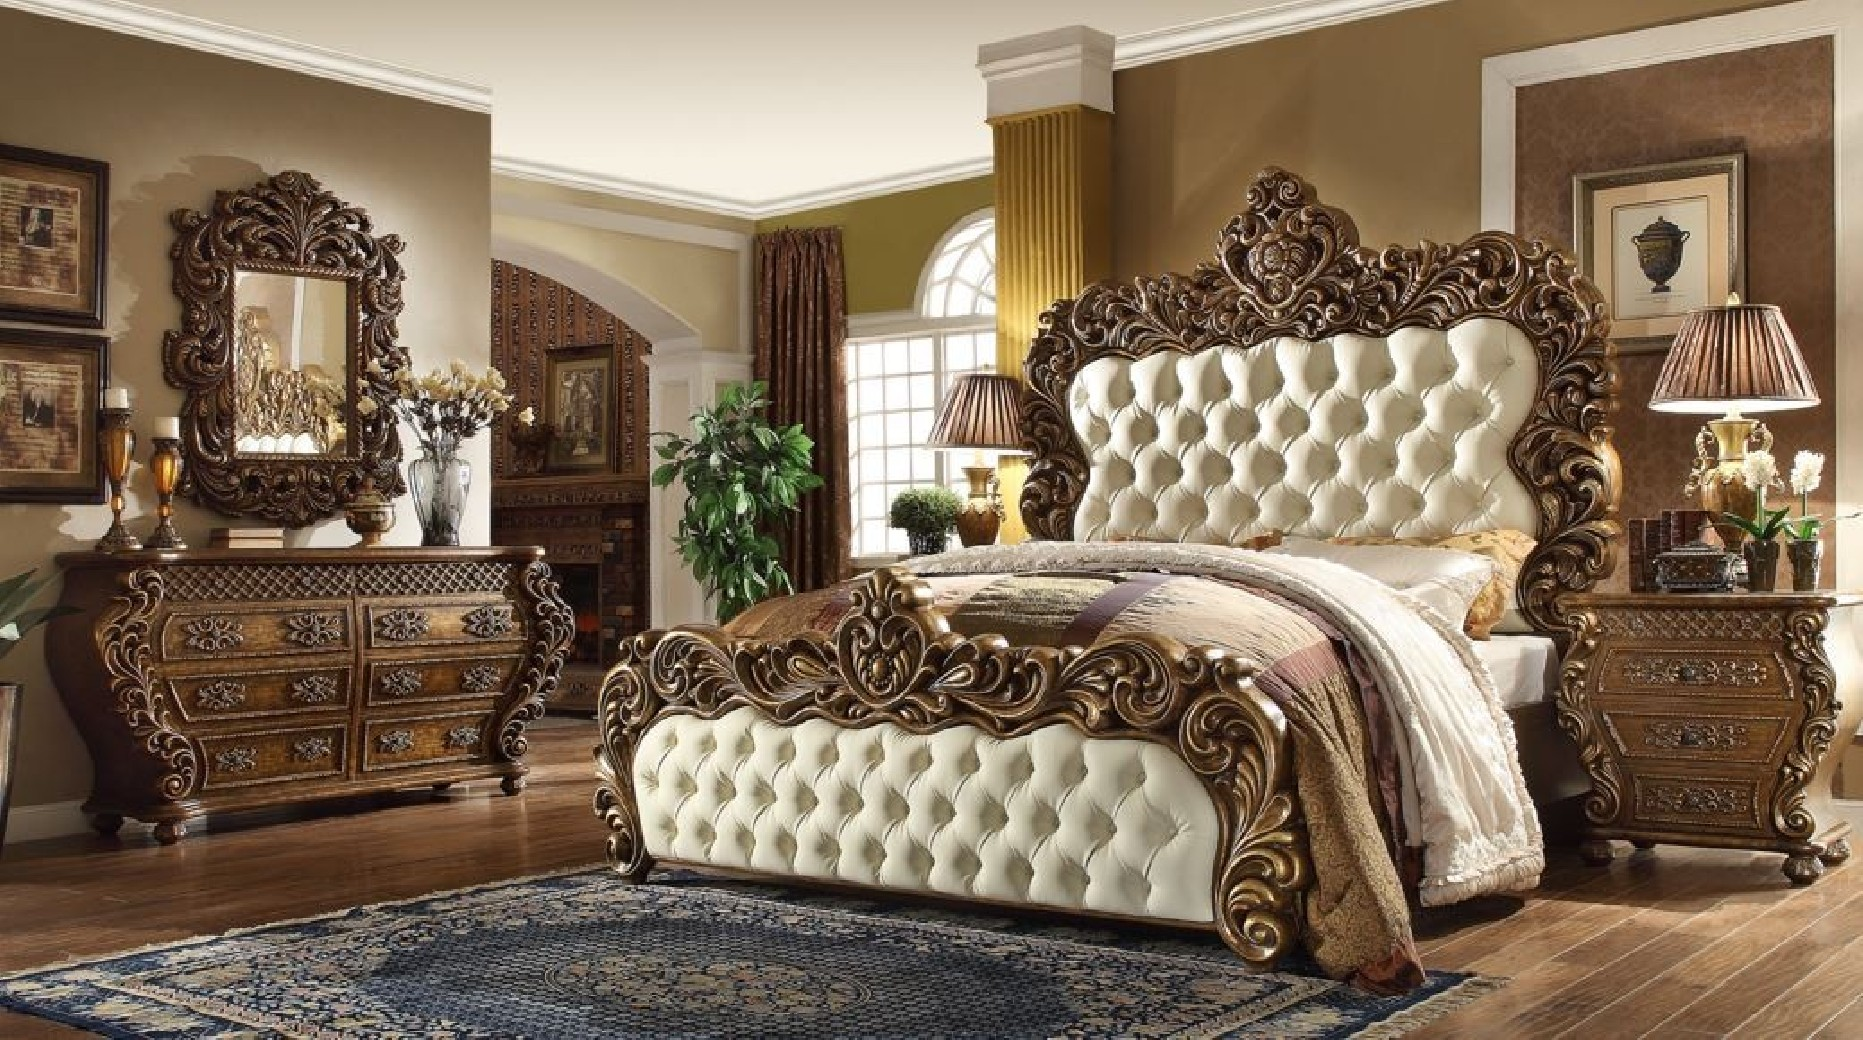 HD 8011 Homey Bedroom Set Victorian, European U0026 Classic Design